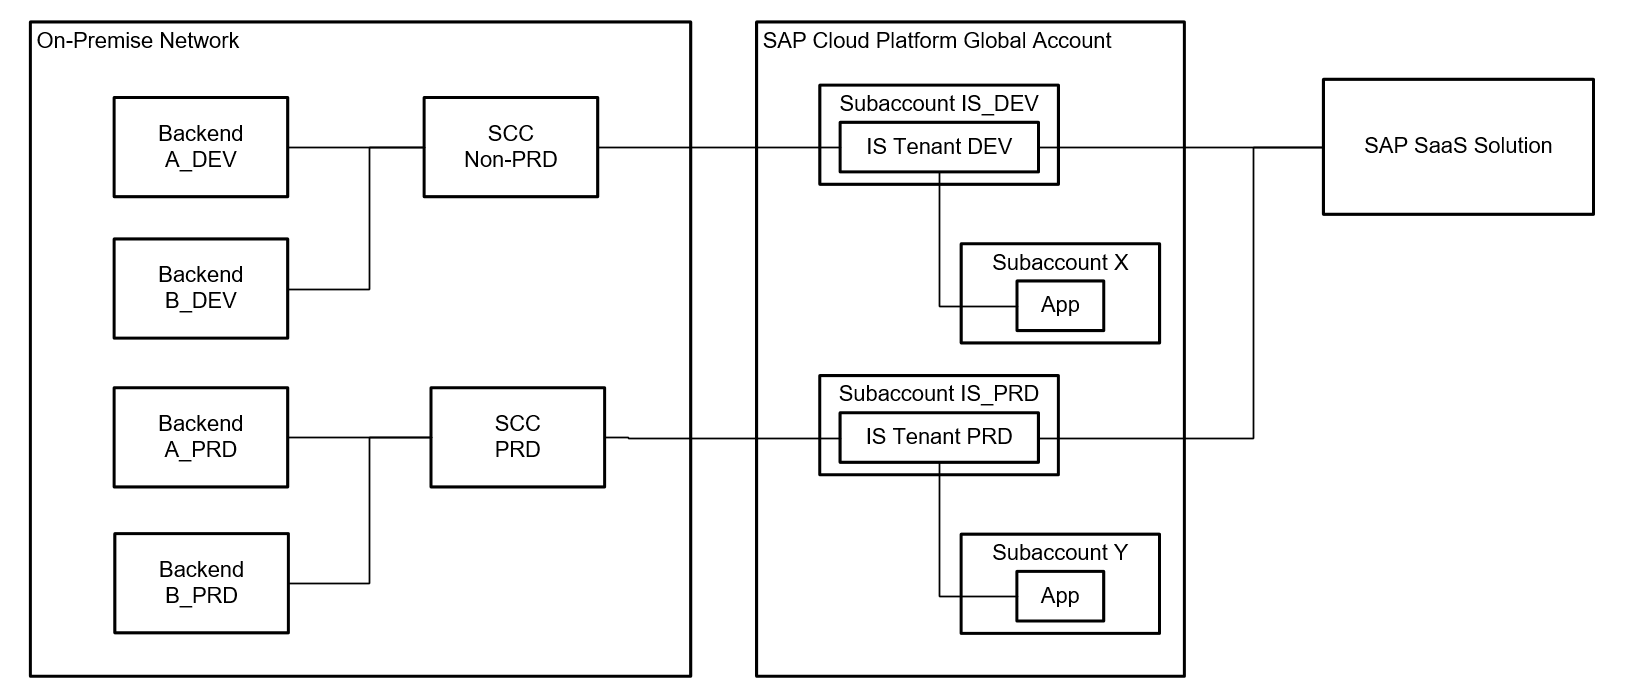 Part 7 sap cloud platform architecture library sap blogs and you are not sure about how many subaccounts tenants and sccs you will need probably the following scenario can serve as a good blueprint for you malvernweather Image collections